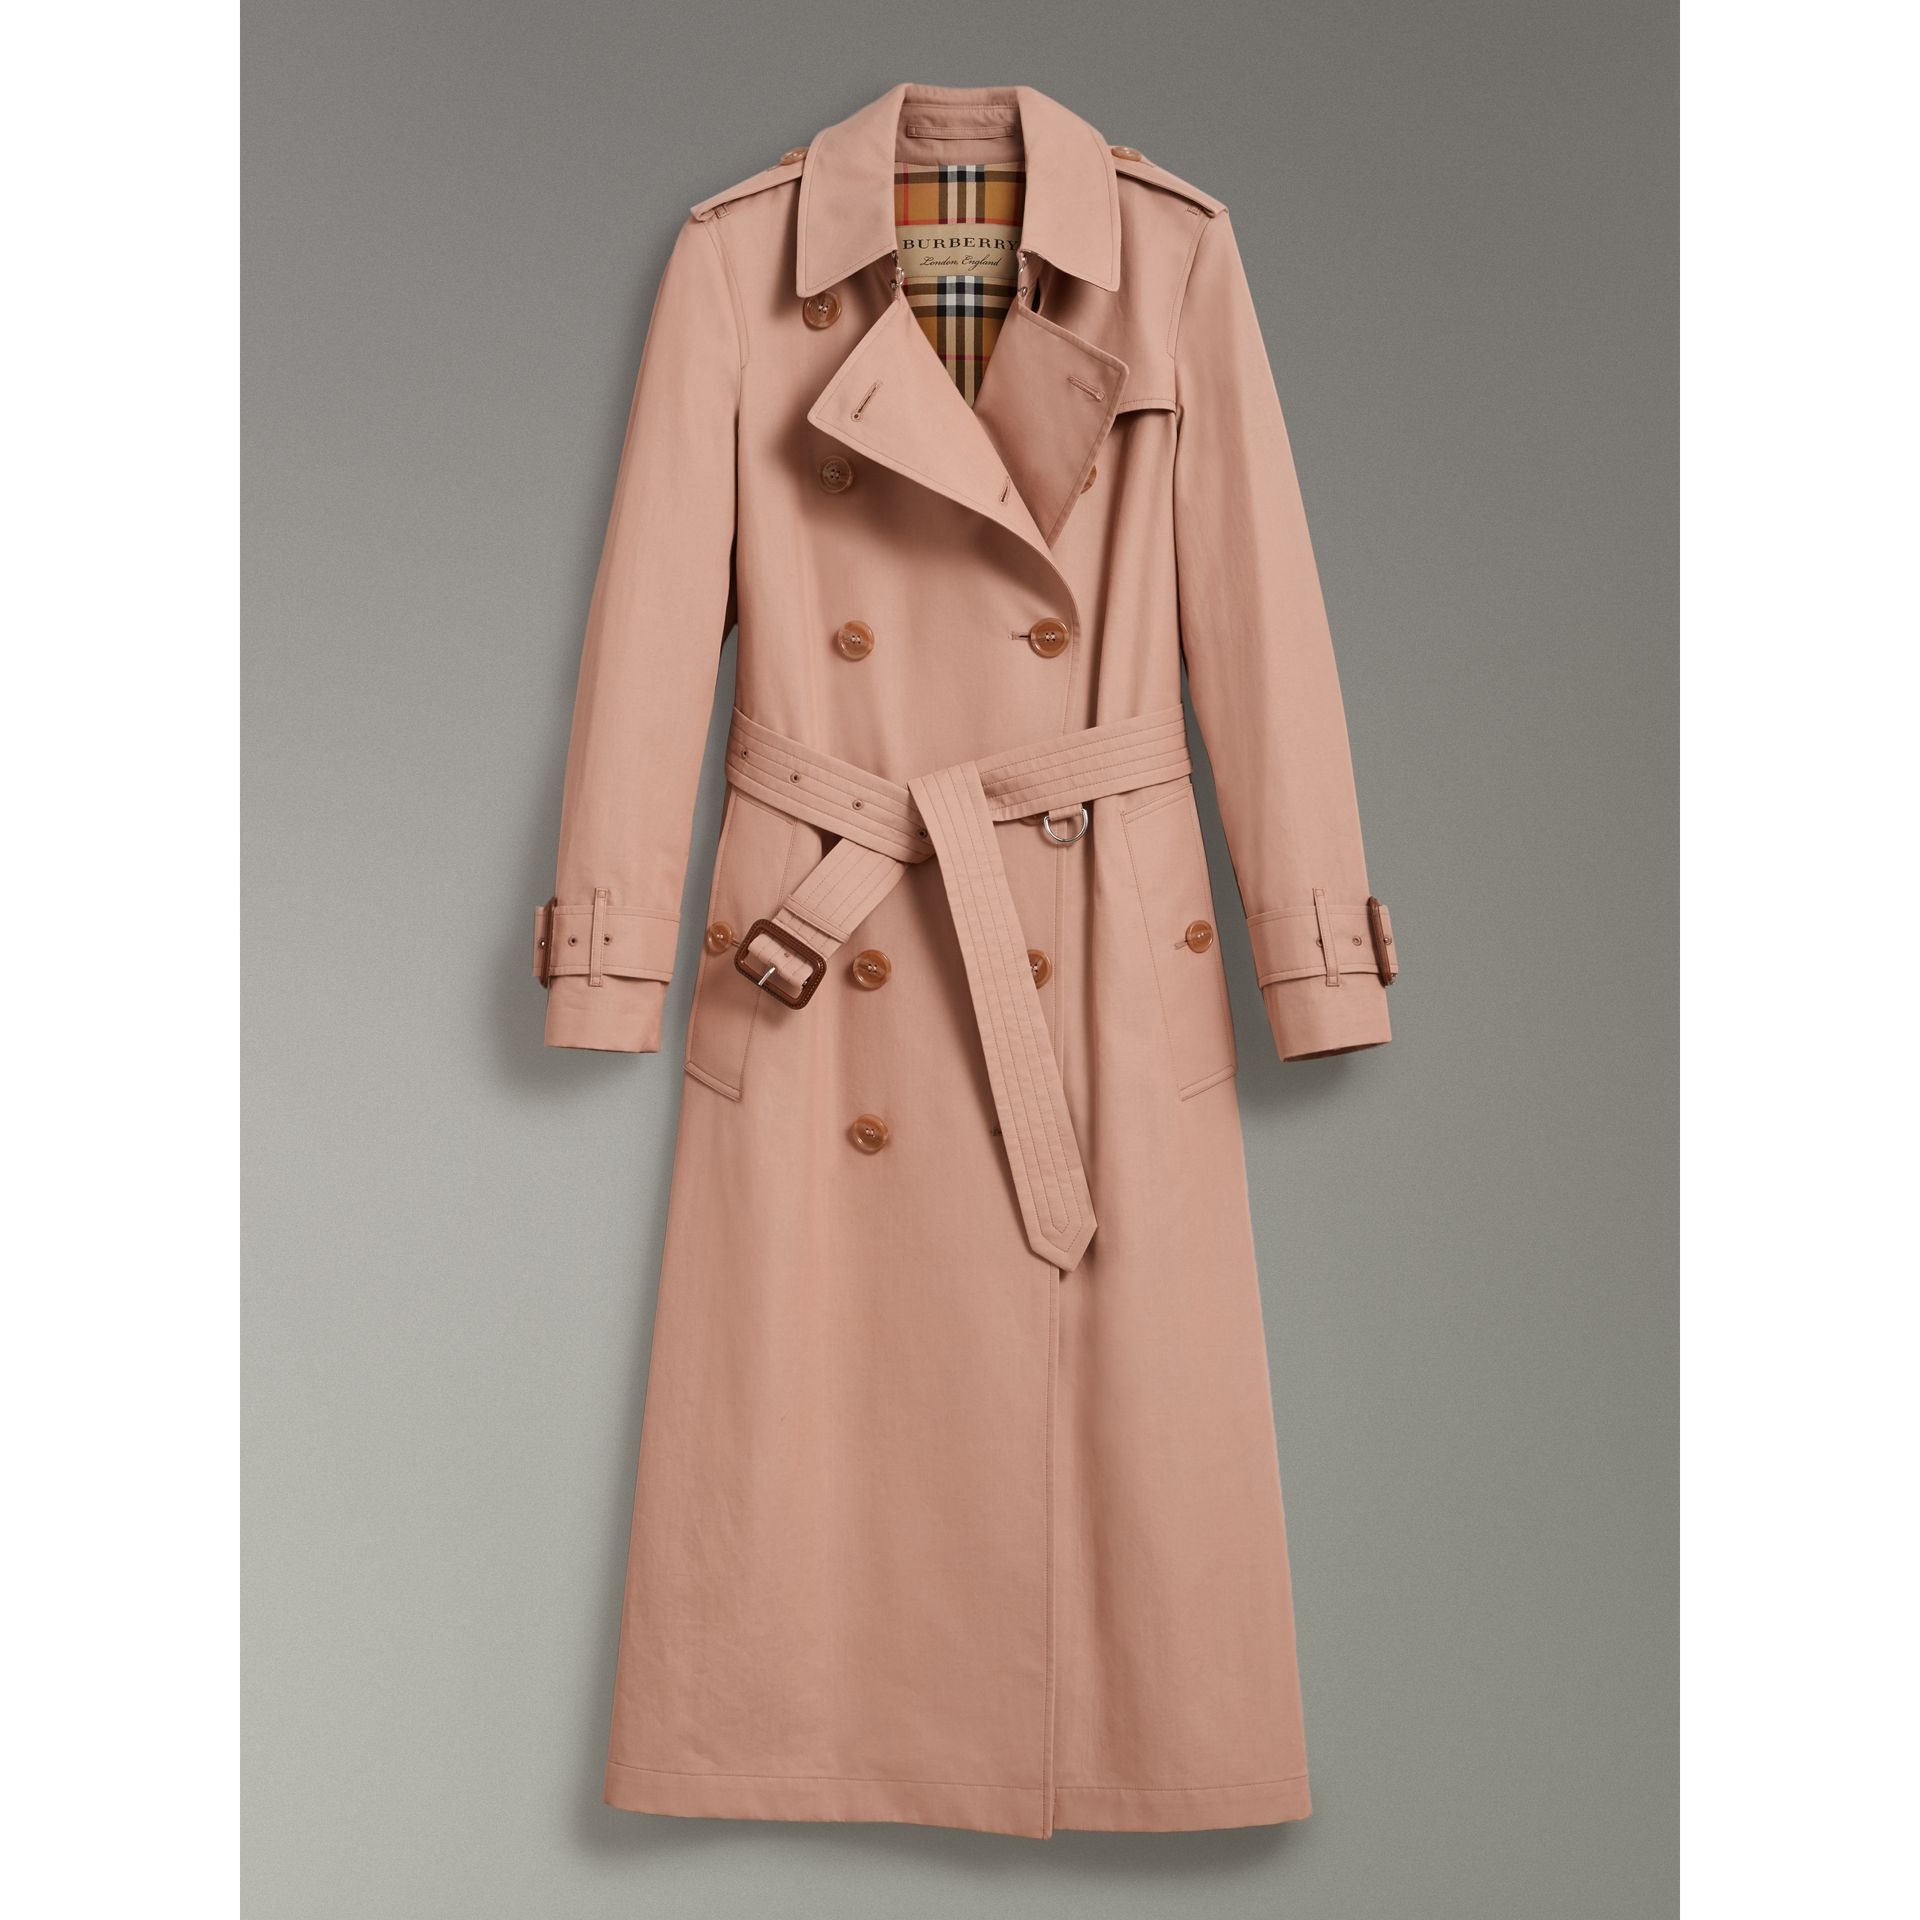 Tropical Gabardine Trench Coat in Pink Apricot - Women | Burberry - gallery image 3